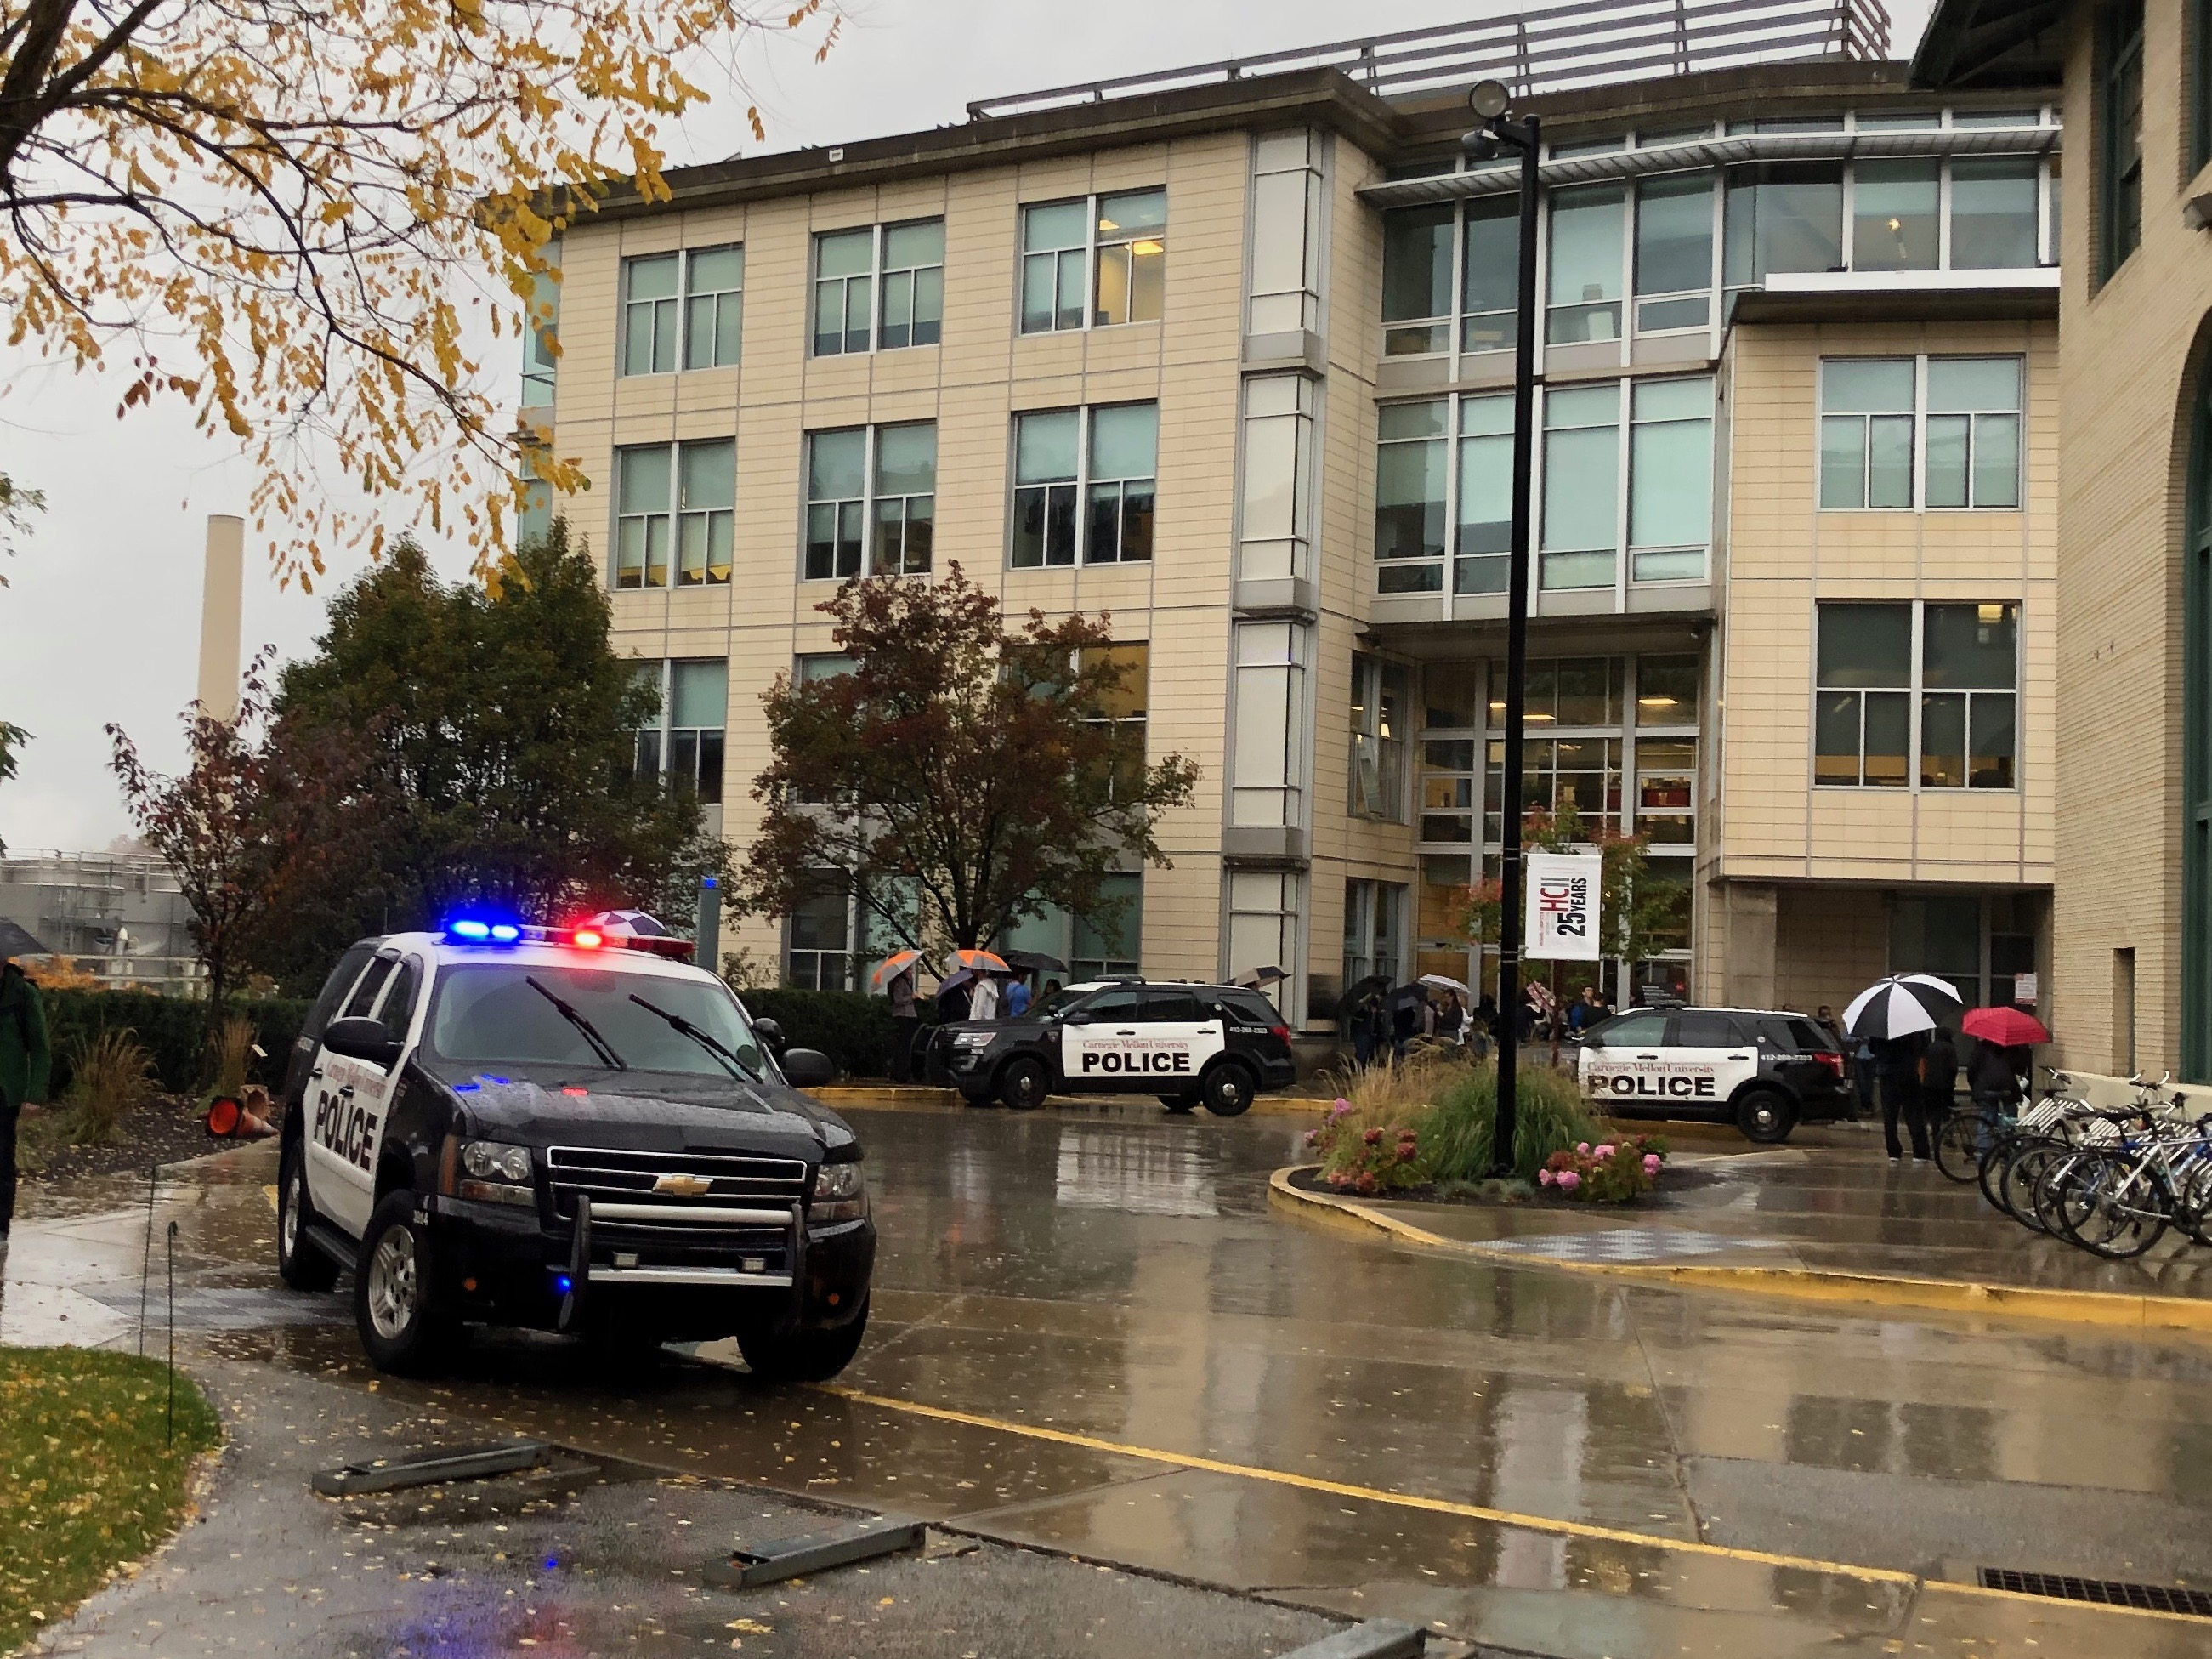 Carnegie Mellon police respond to the Collaborative Innovation Center after a car fire broke out in the building's garage. (credit: Jacob Paul/Layout Manager)